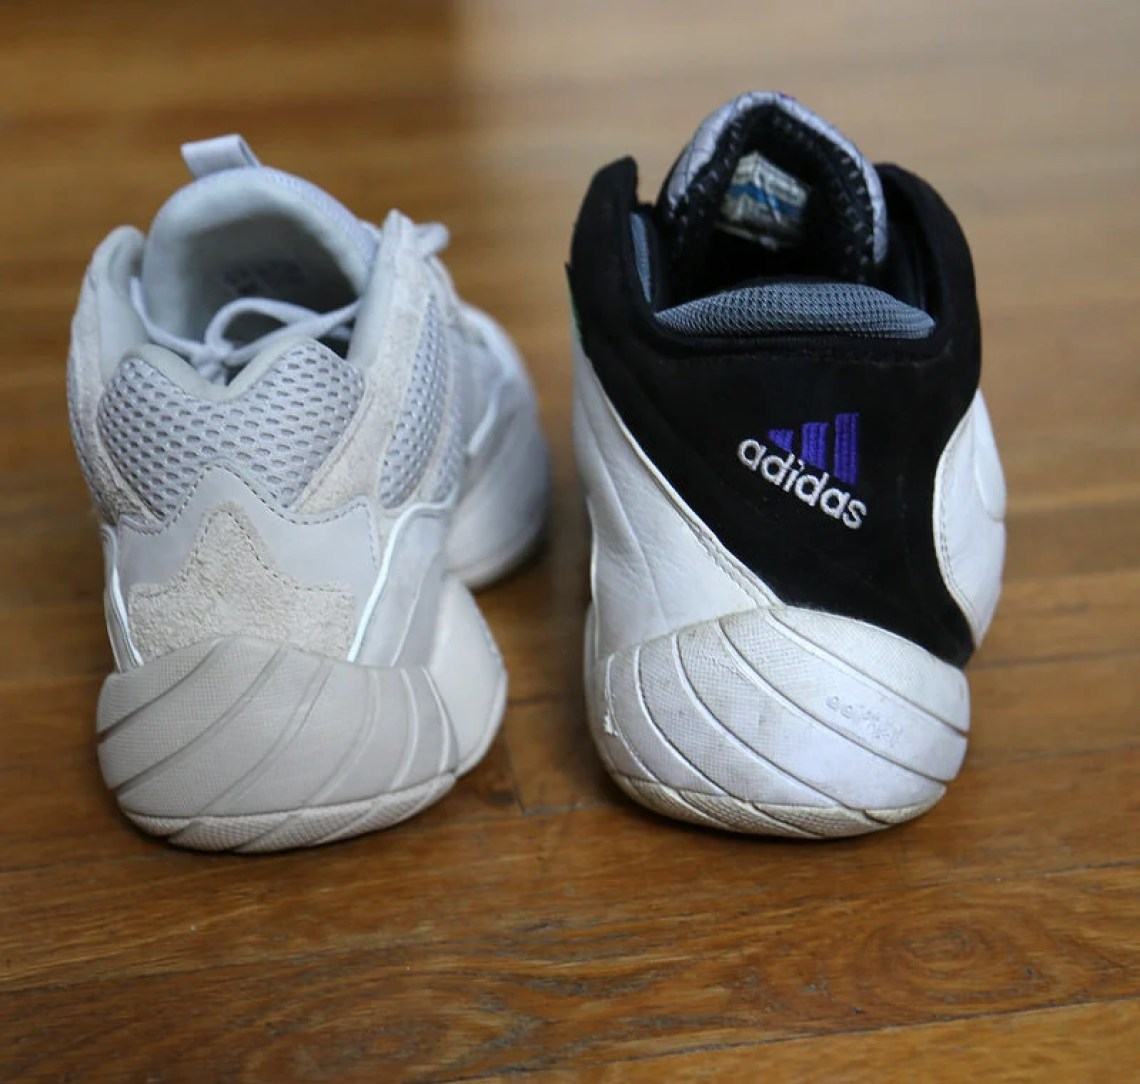 348c7f485d4a2 If you re after even more knowledge and history from Adidas  much loved  Feet You Wear era